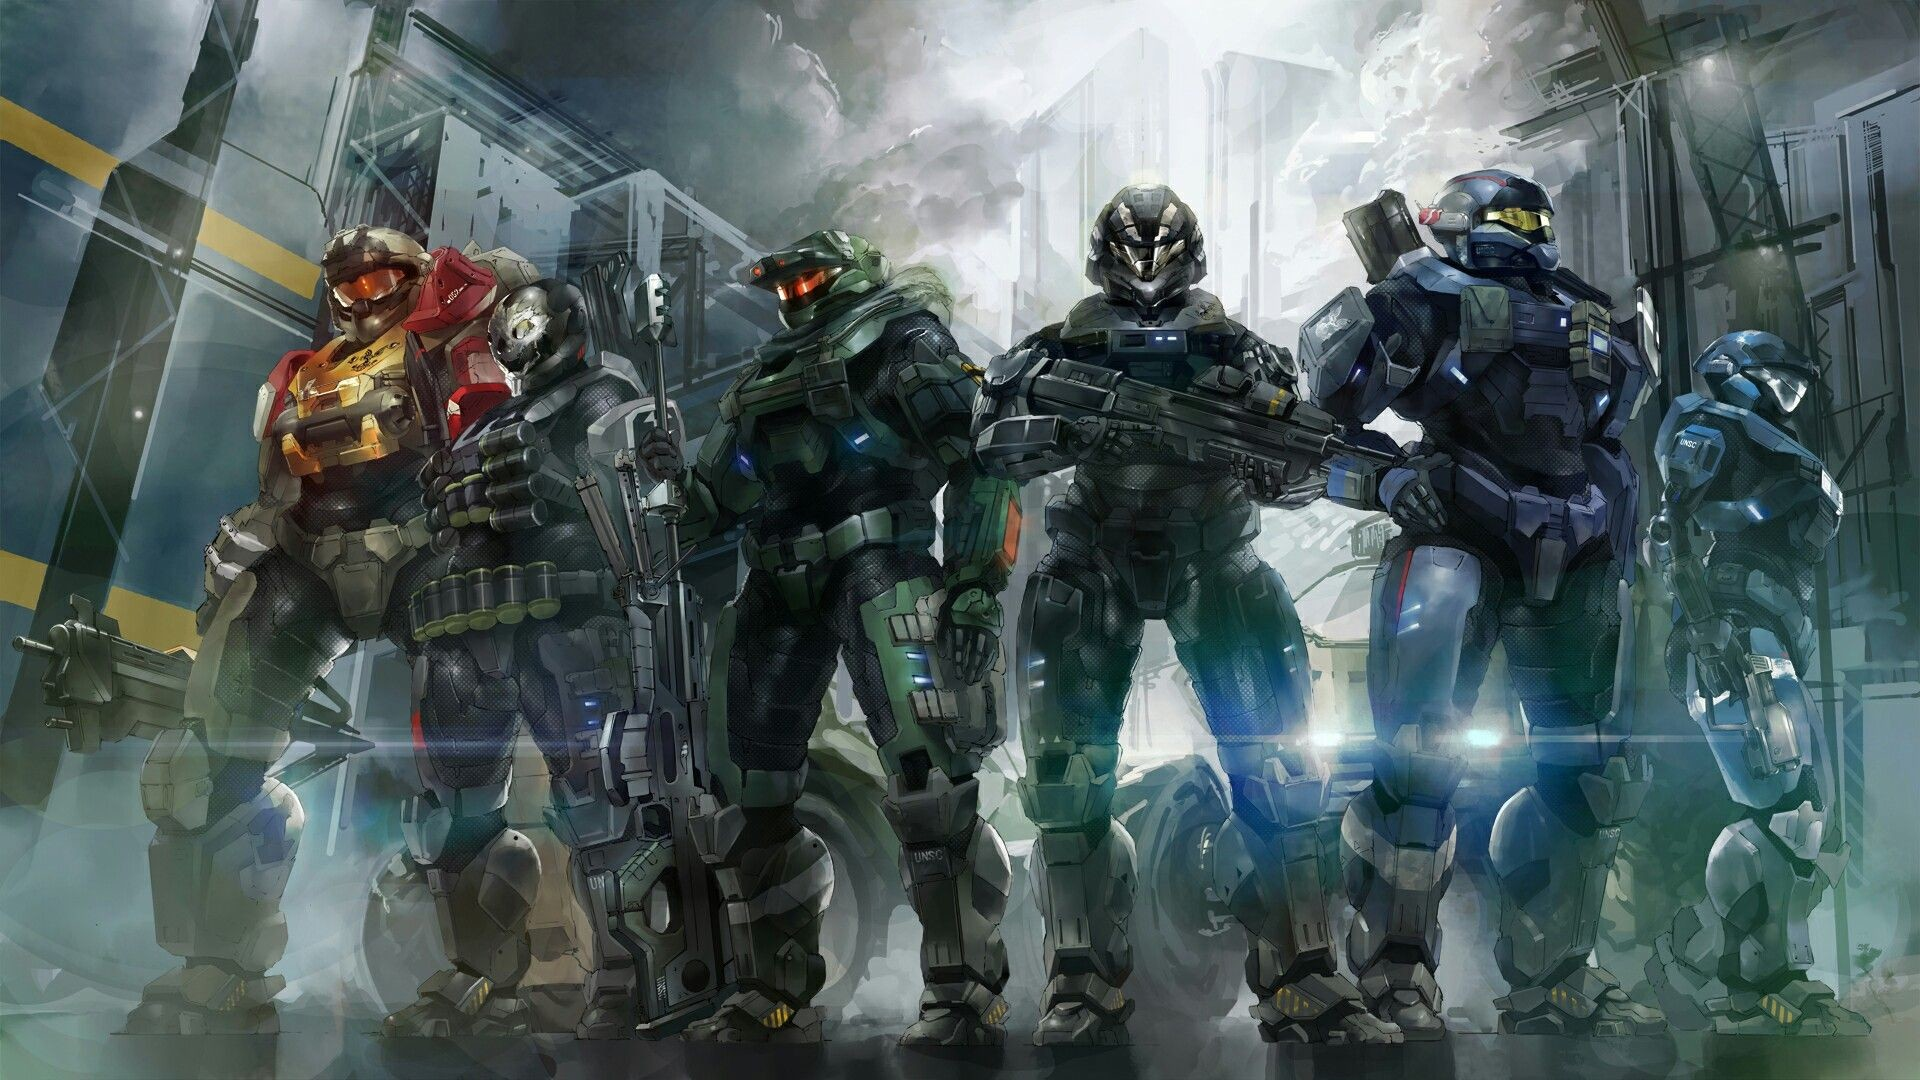 1920x1080 Noble Team Fallout 4 Weapons, Dbz, Mass Effect, Master Chief, Halo Game